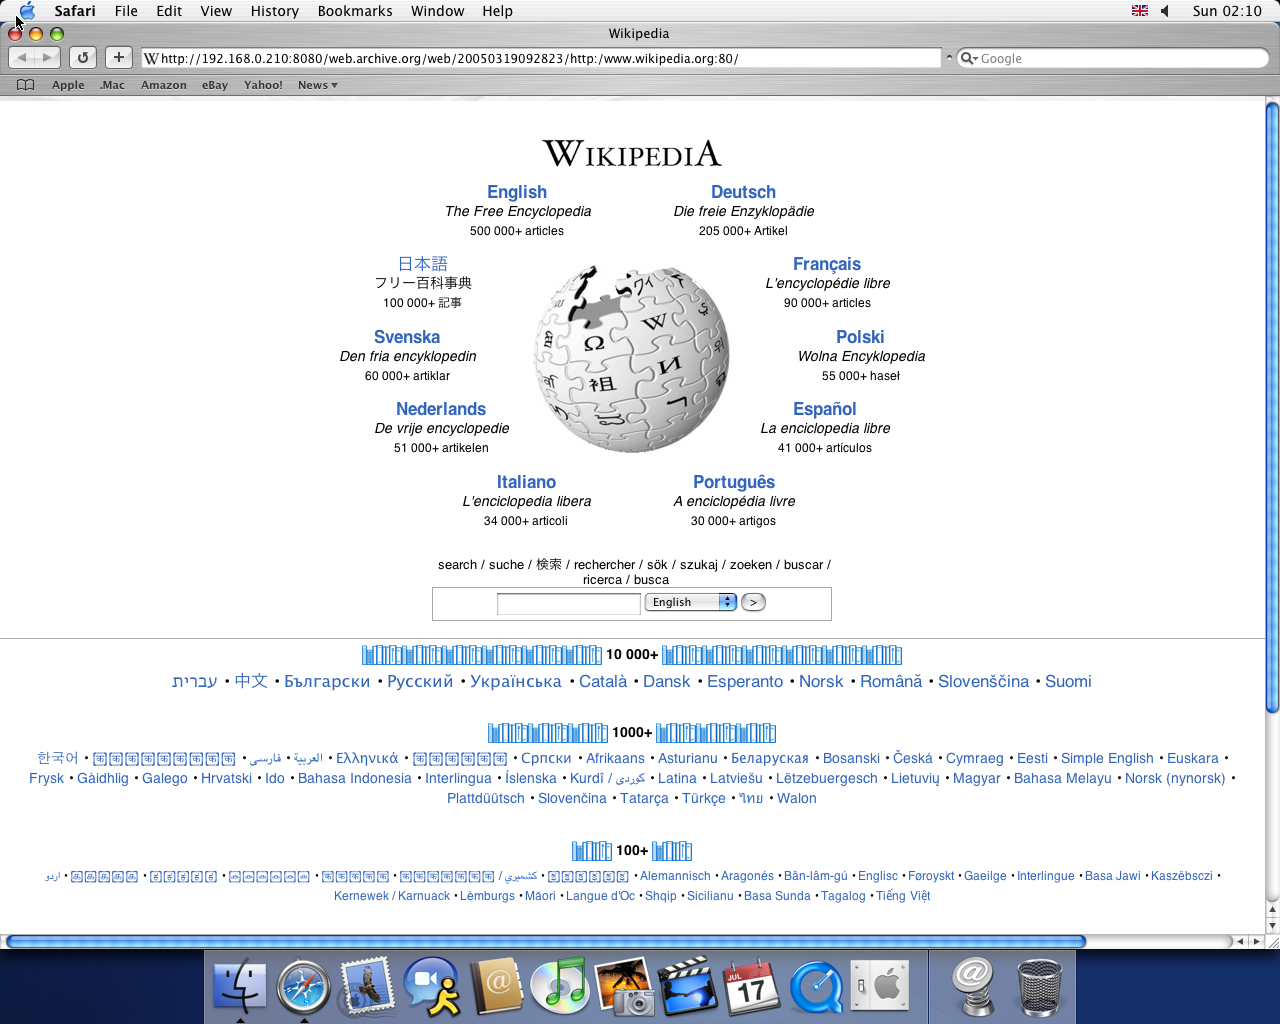 OS X 10.3 PPC with Safari 1.1 displaying a page from Wikipedia.org archived at March 19, 2005 at 09:28:23